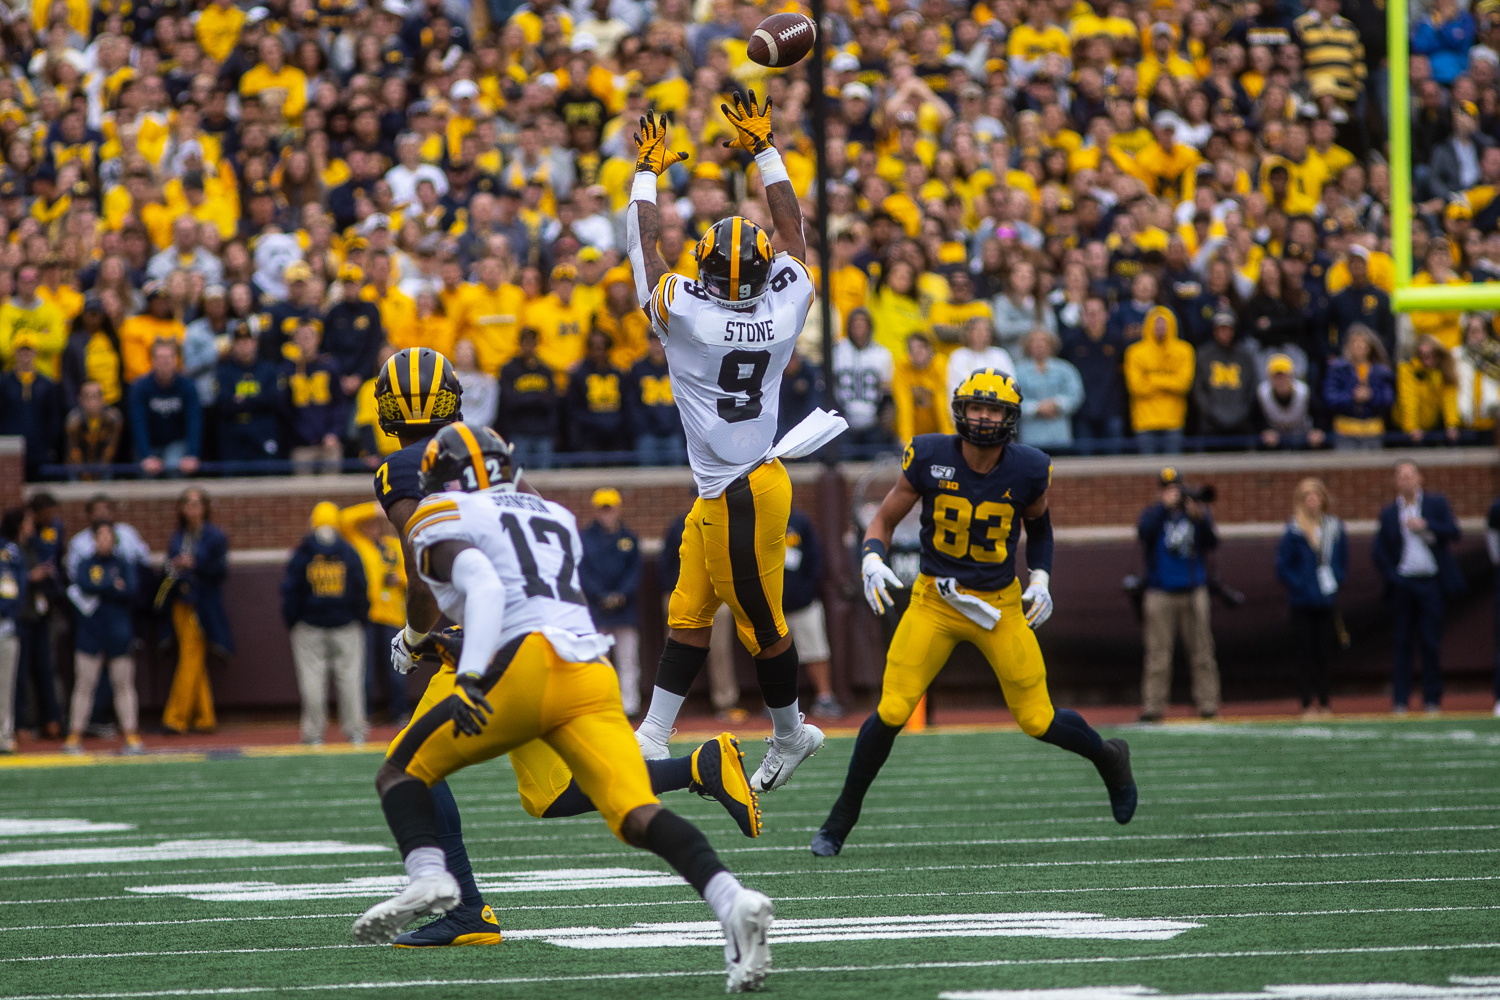 Iowa defensive back Geno Stone goes up for an interception during a football game between Iowa and Michigan at the Michigan Stadium in Ann Arbor, Michigan on Saturday, October 5, 2019. The Wolverines defeated the Hawkeyes 10-3.